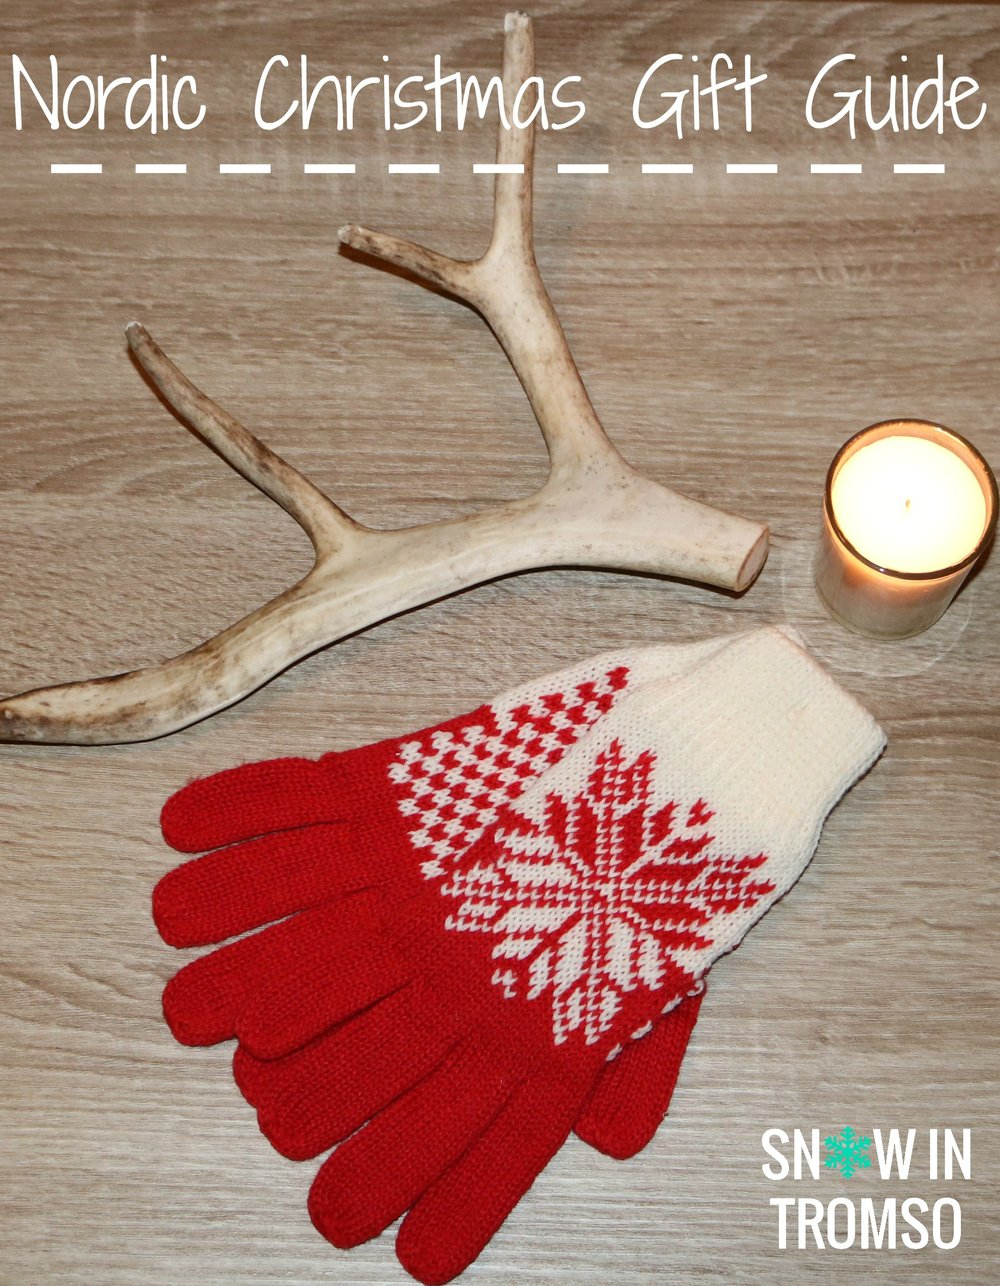 Nordic Christmas Gift Guide on Snow in Tromso.jpg